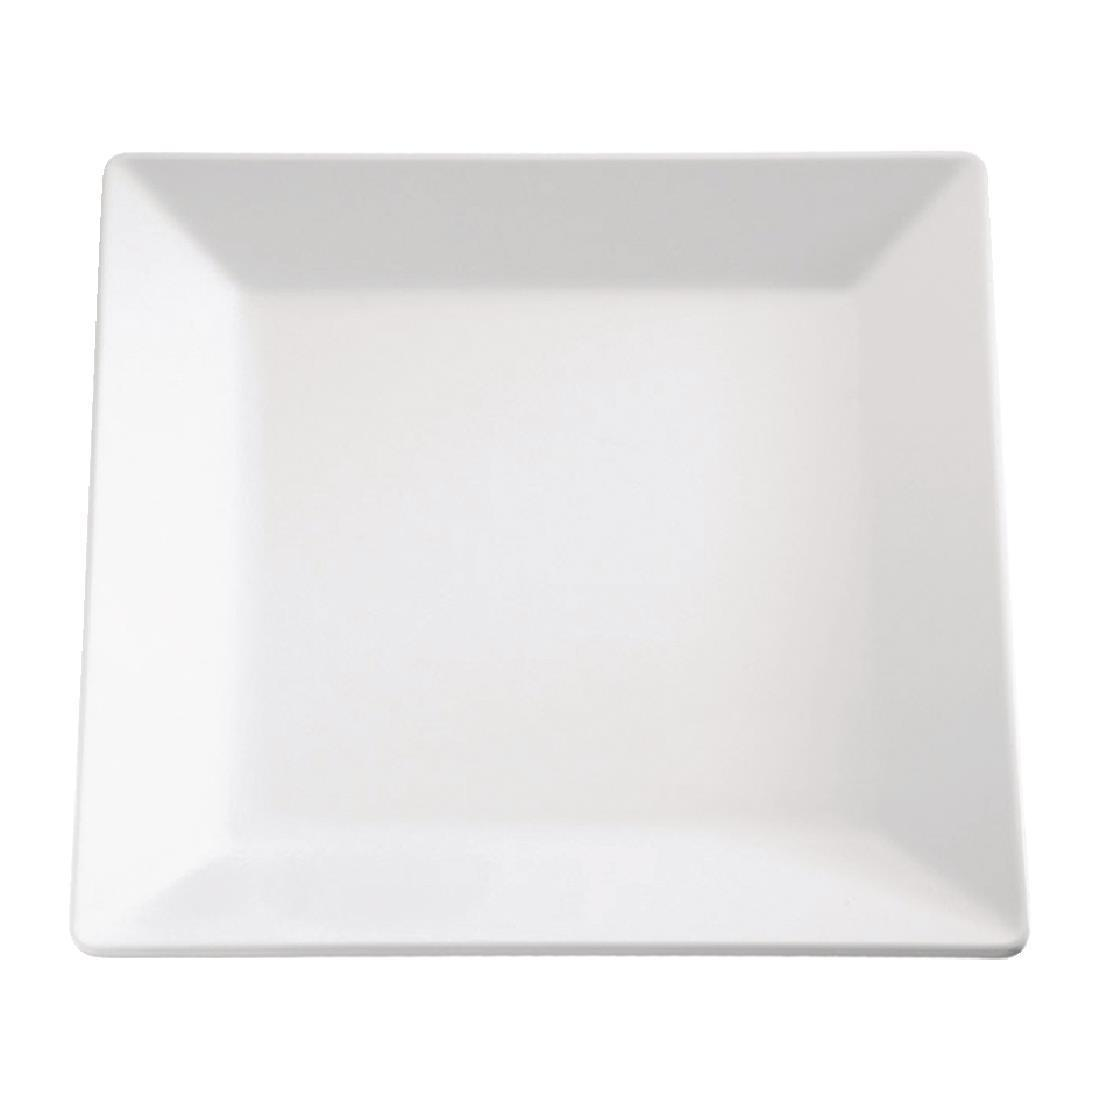 APS Pure Melamine Square Tray 10in - Each - GF172